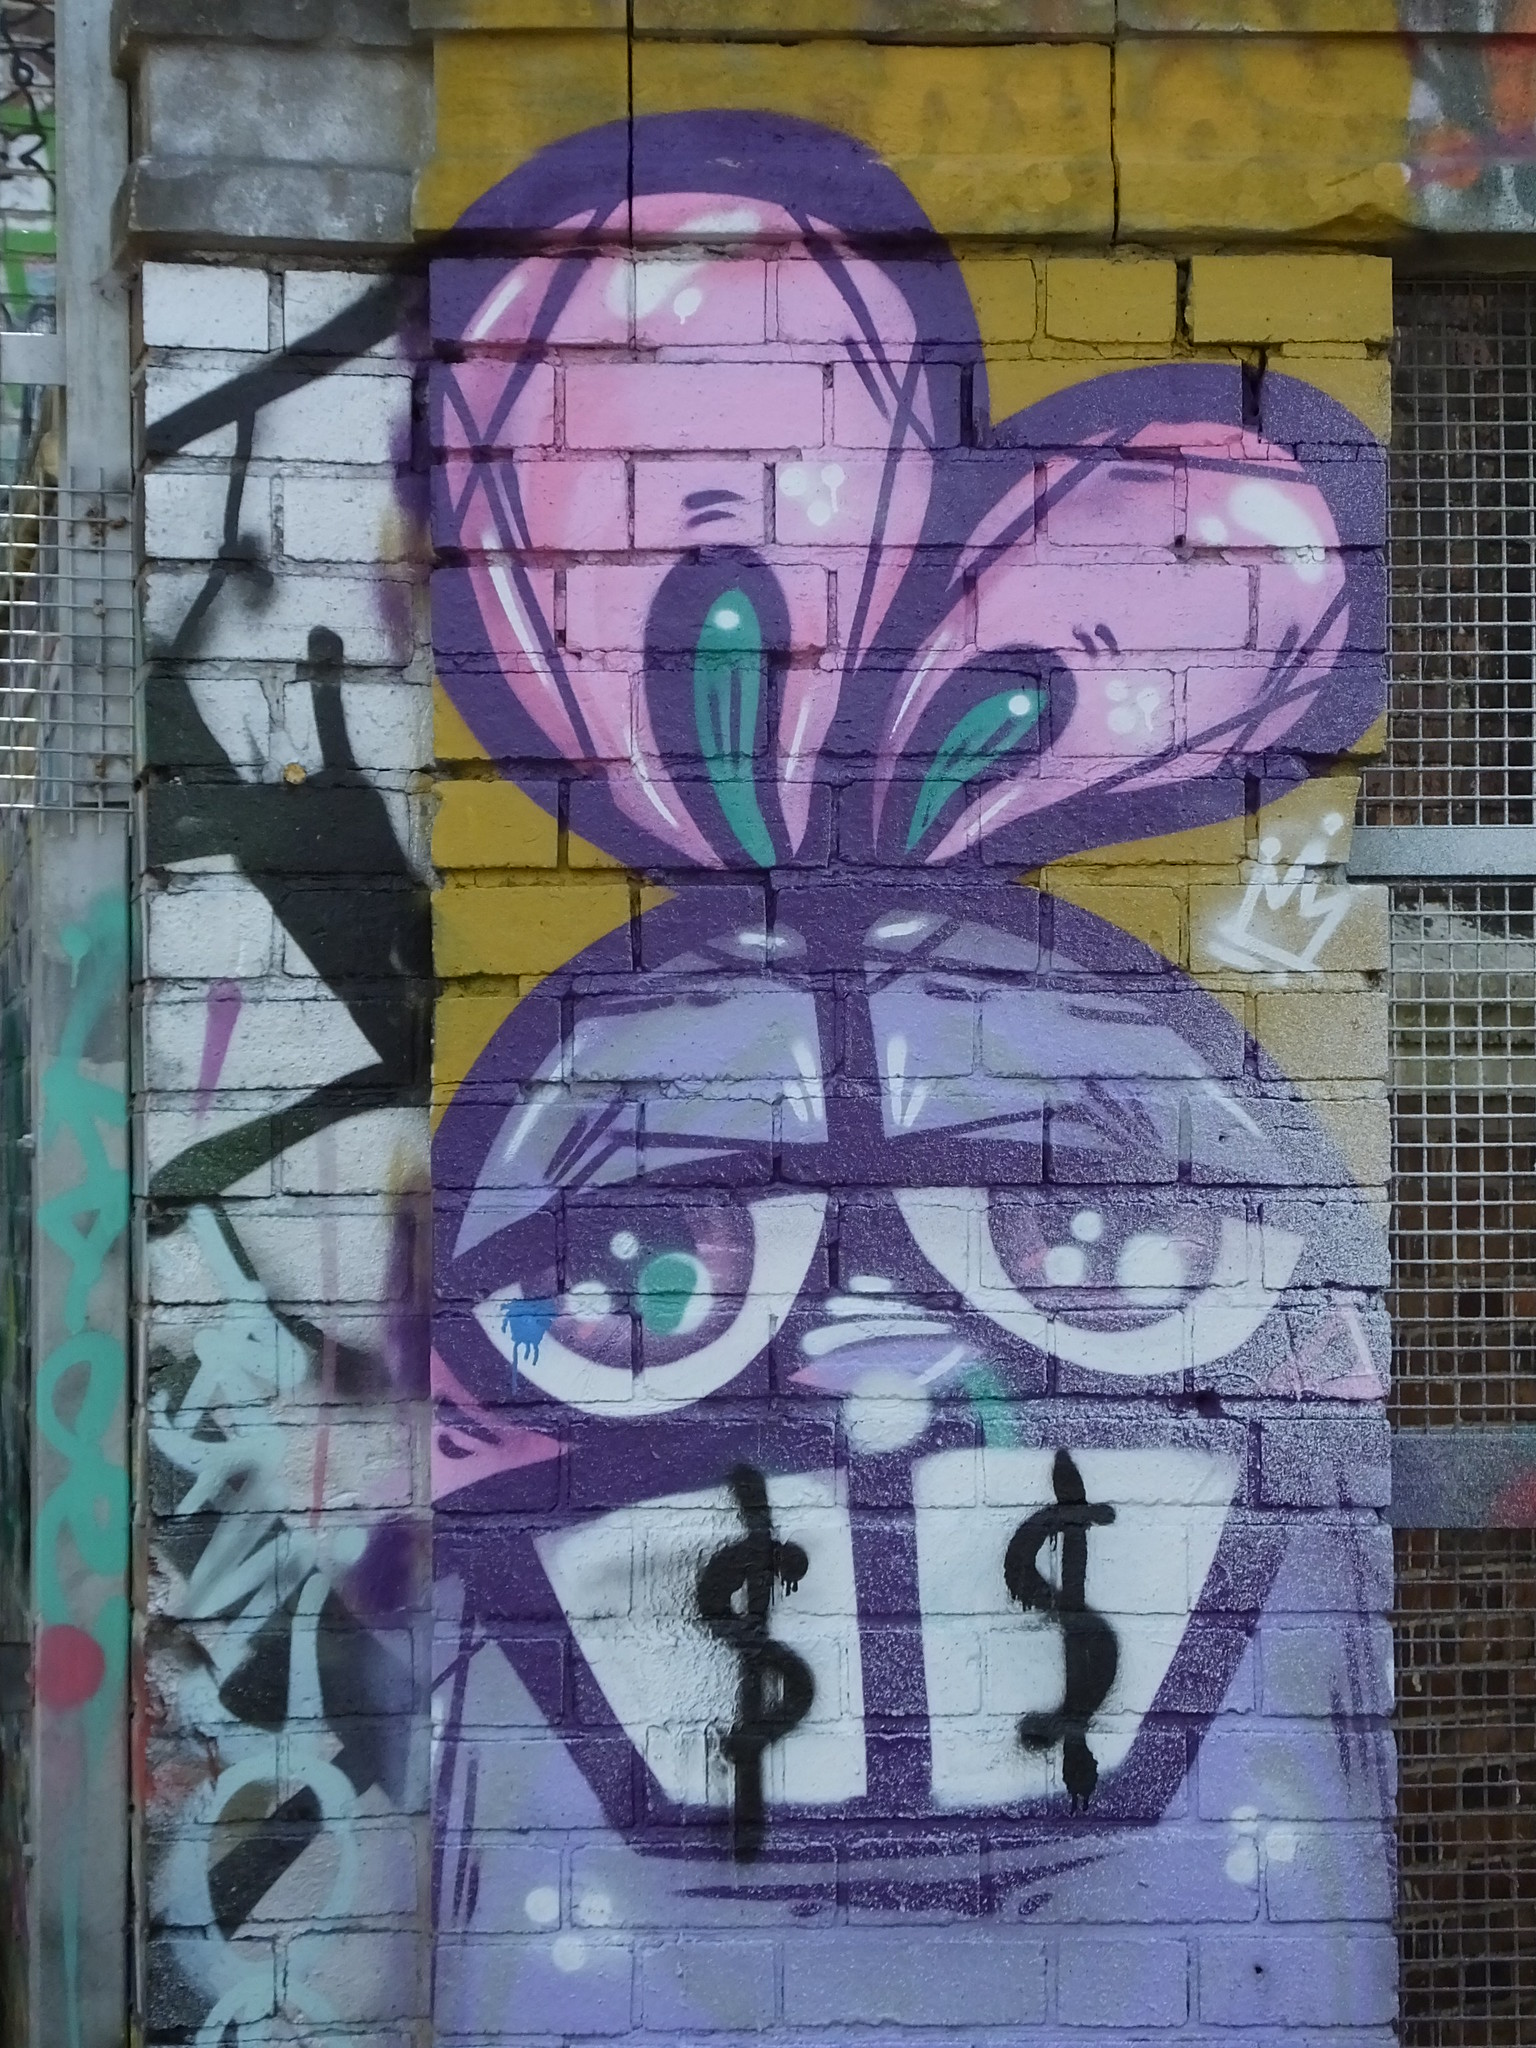 Bristol Street Art: Follow my rabbits